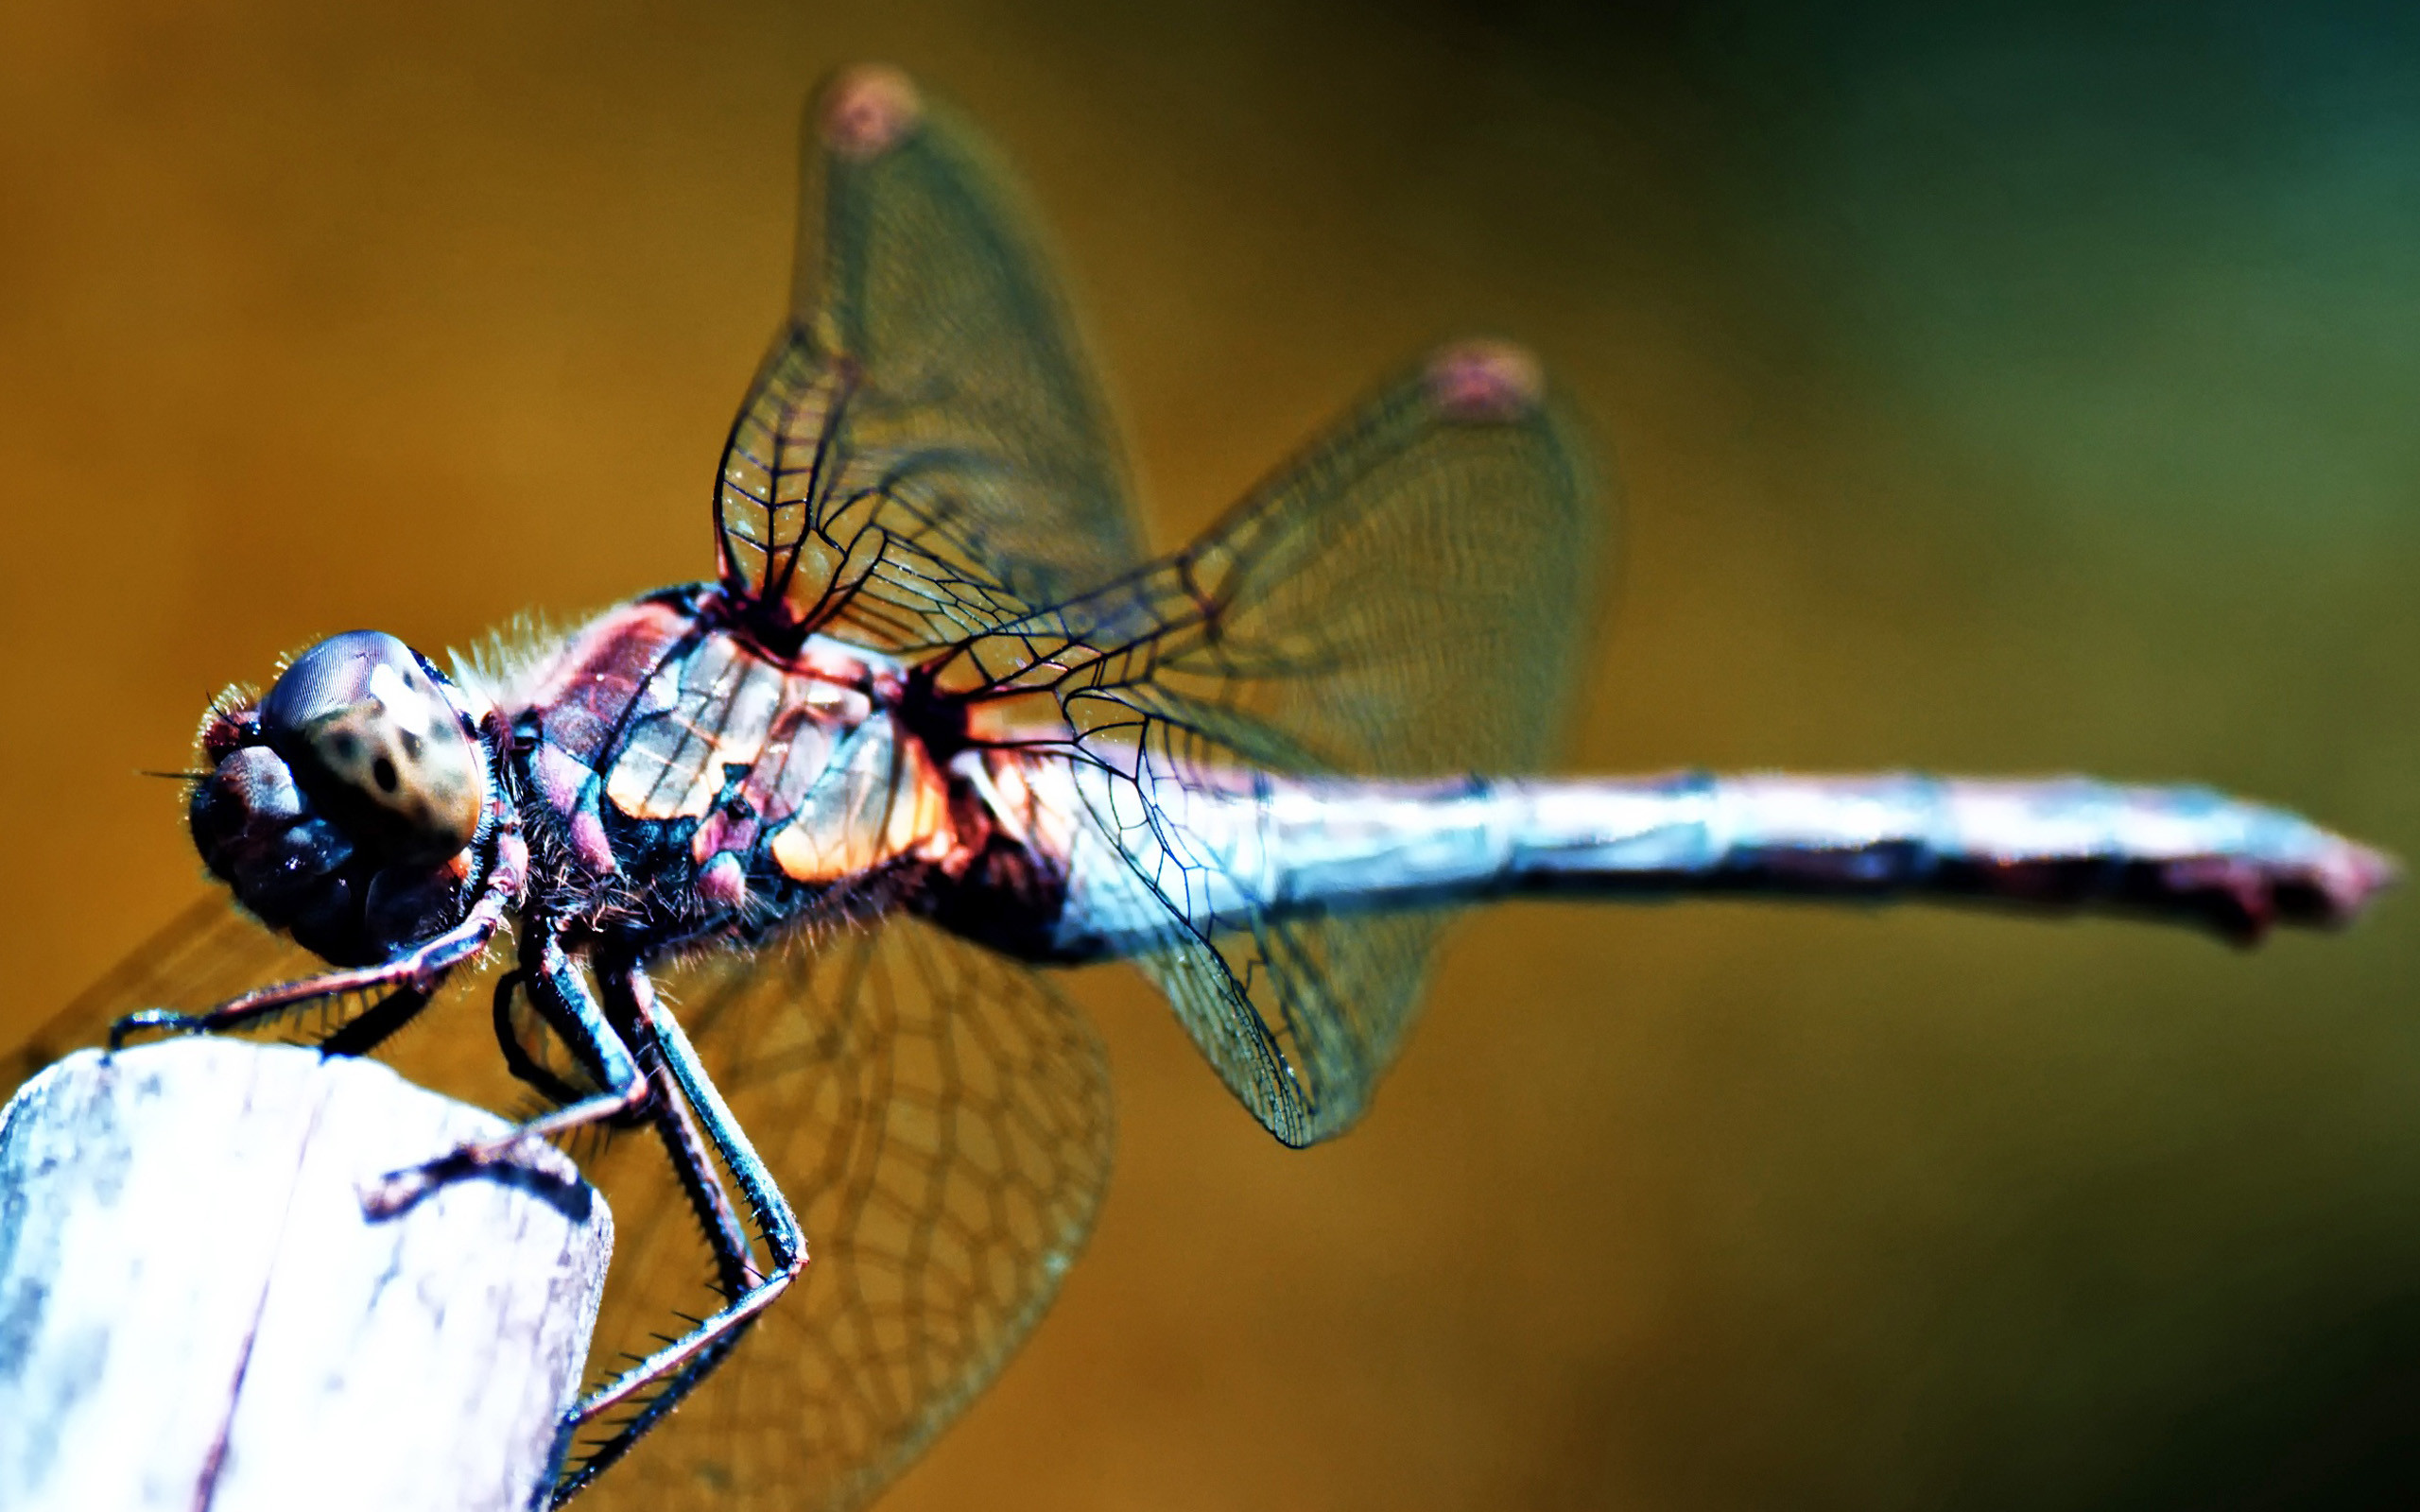 dragonfly wallpaper high quality 2560x1600